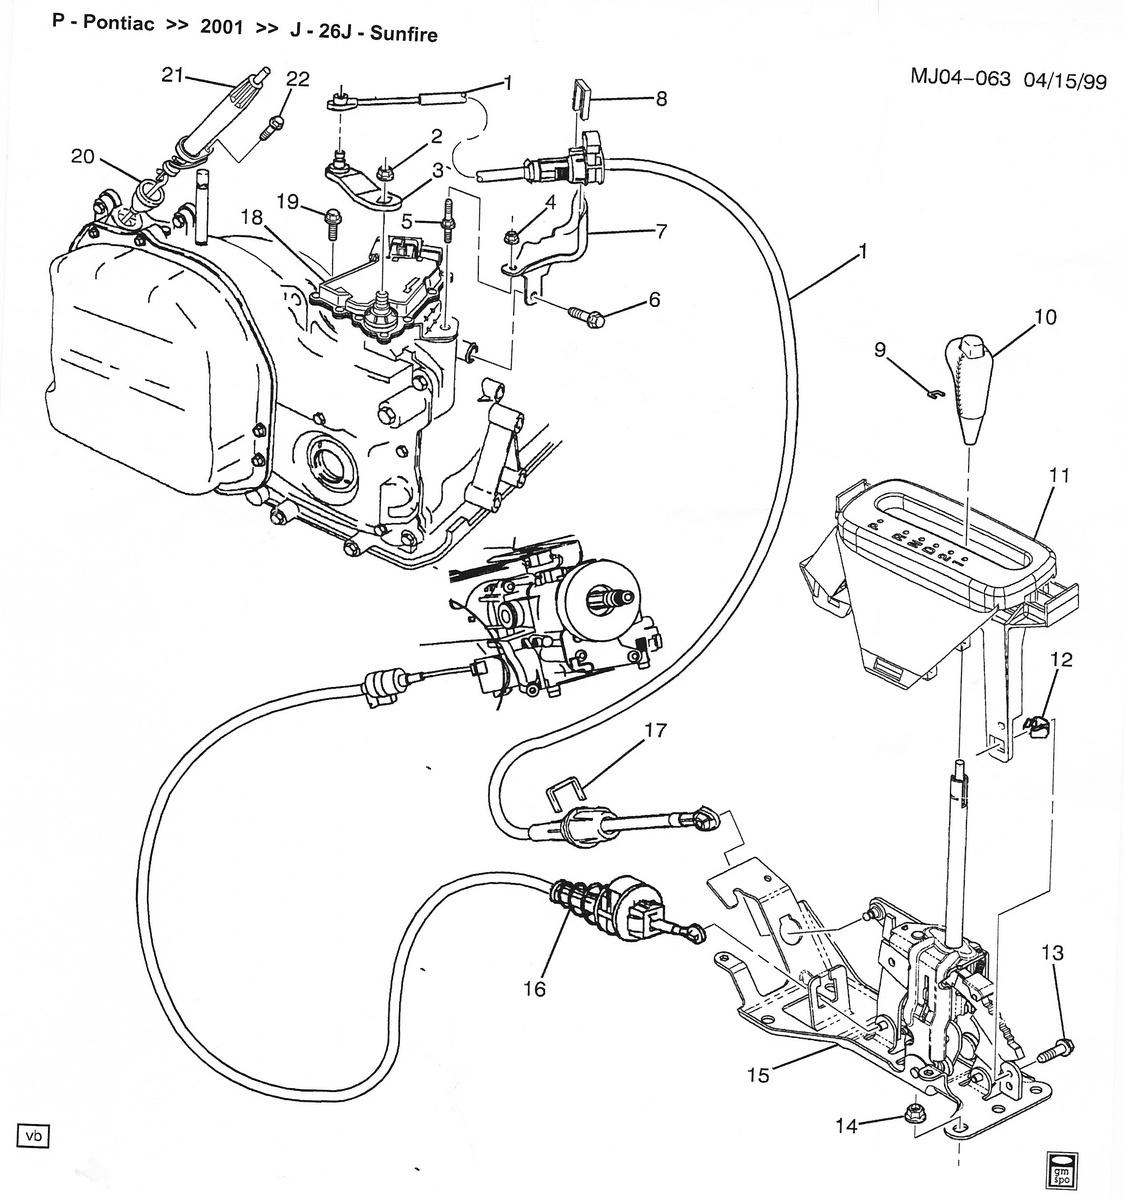 pic 6643649147363073190 1600x1200 chevrolet cavalier questions how to repair my shifter linkage Chevy Wiring Harness Diagram at edmiracle.co